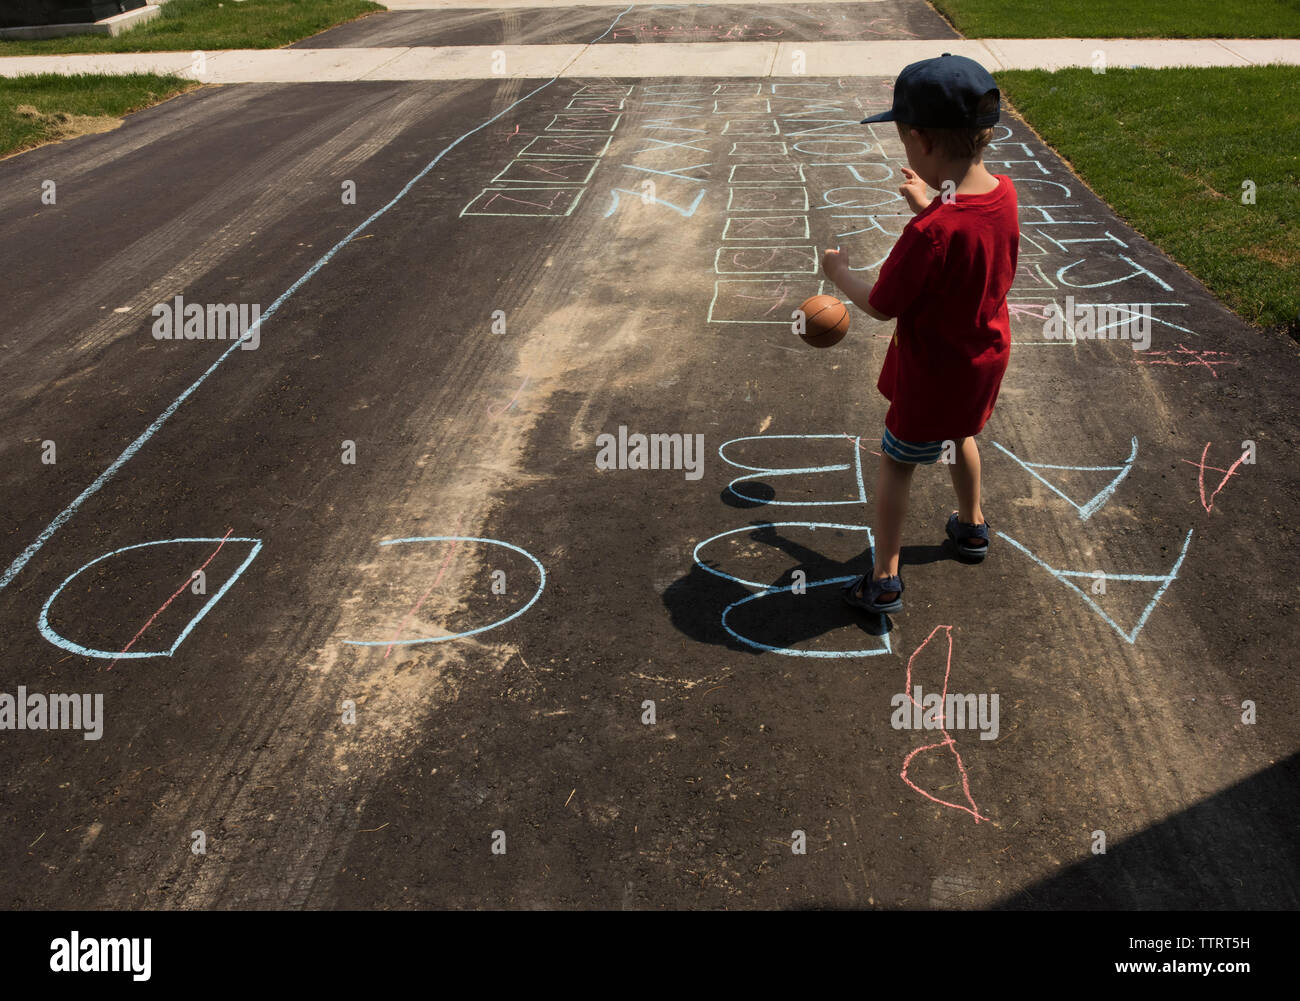 Rear view of boy playing with ball while standing on road with chalk drawing - Stock Image